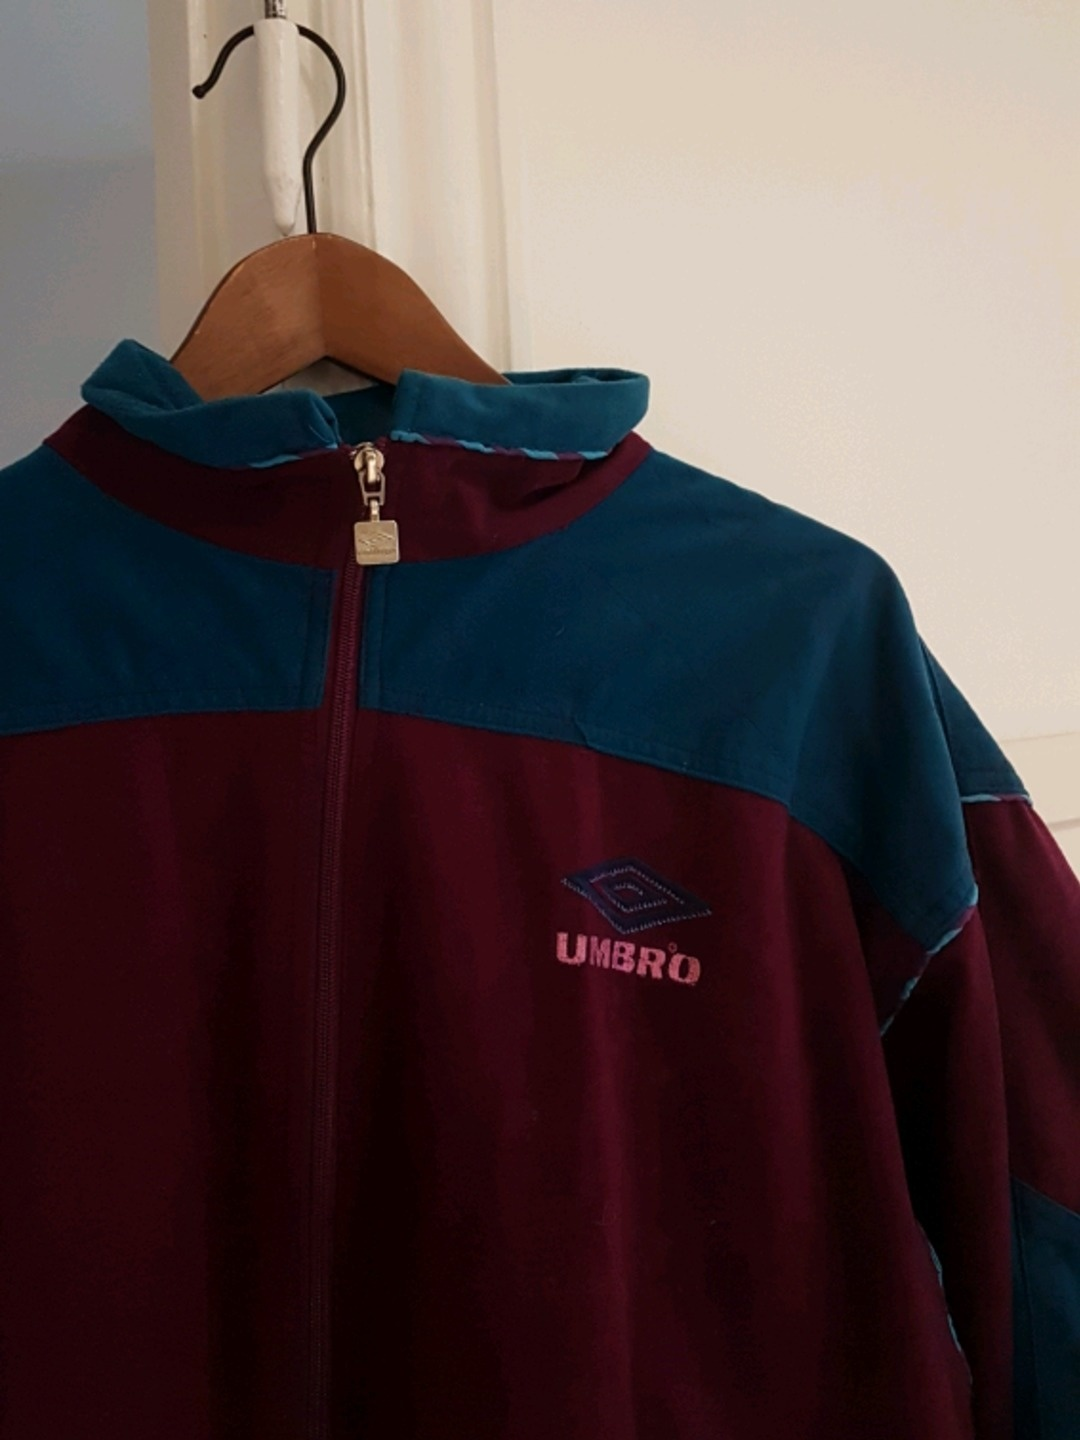 Damers frakker og jakker - UMBRO photo 1